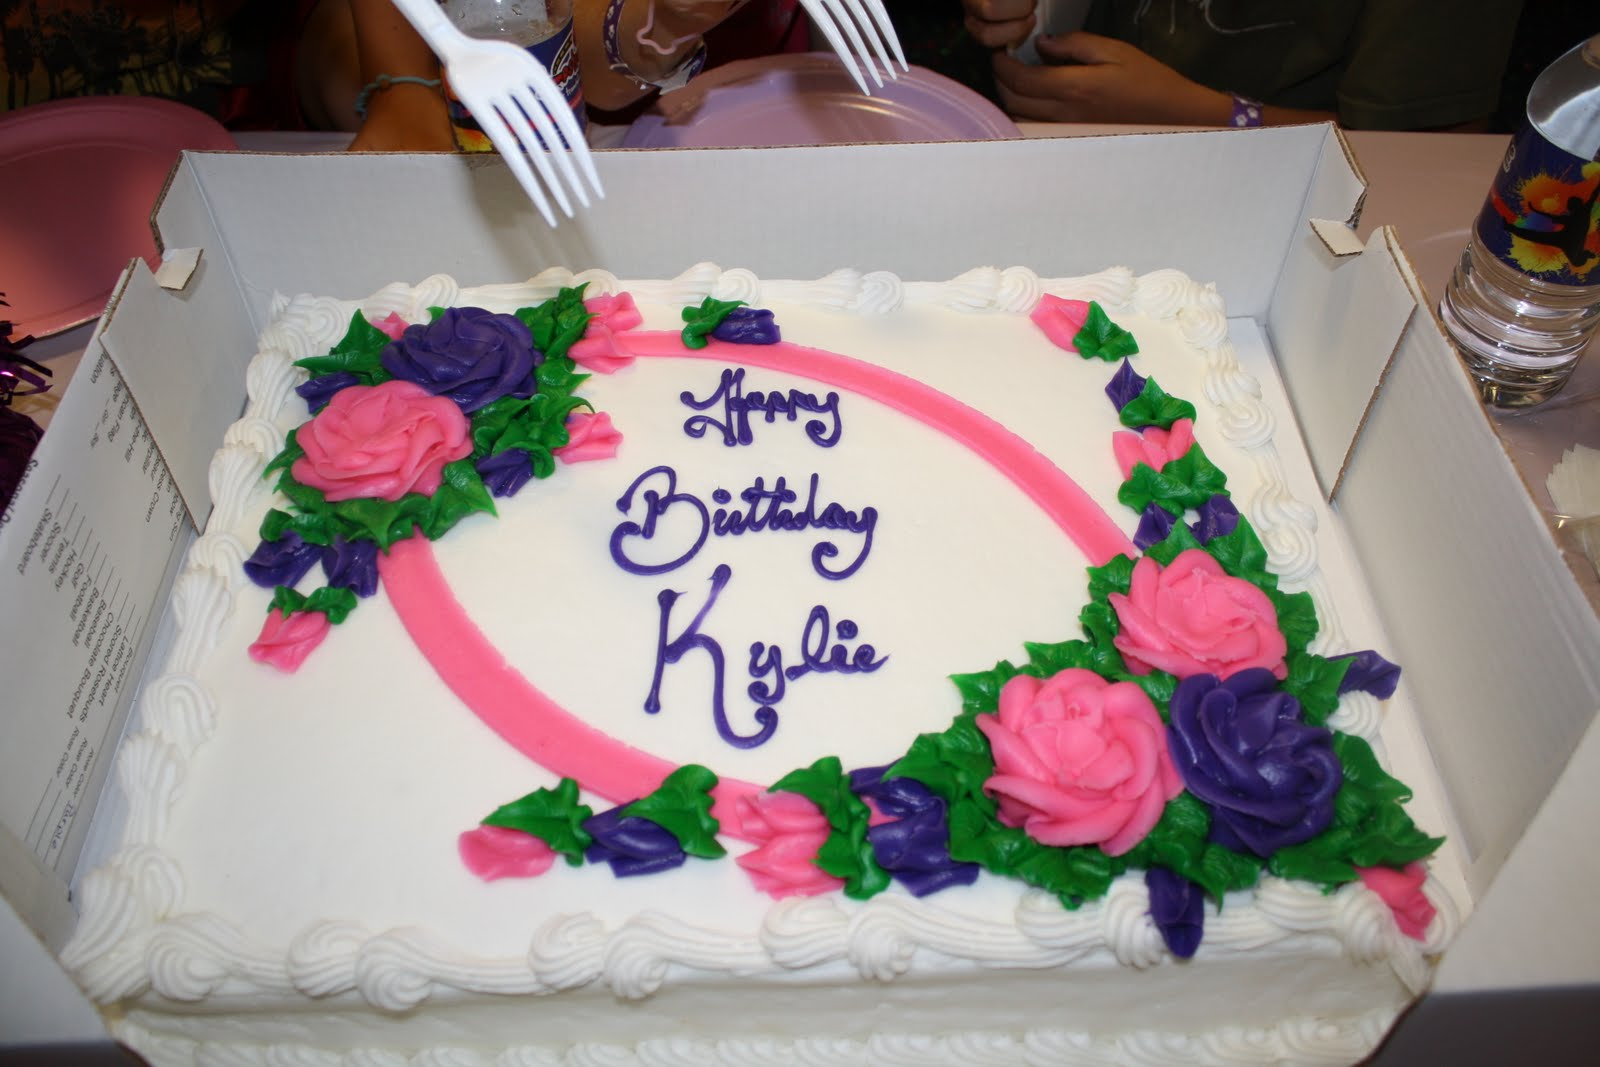 Banquet event order template moreover bakery cakes at walmart on